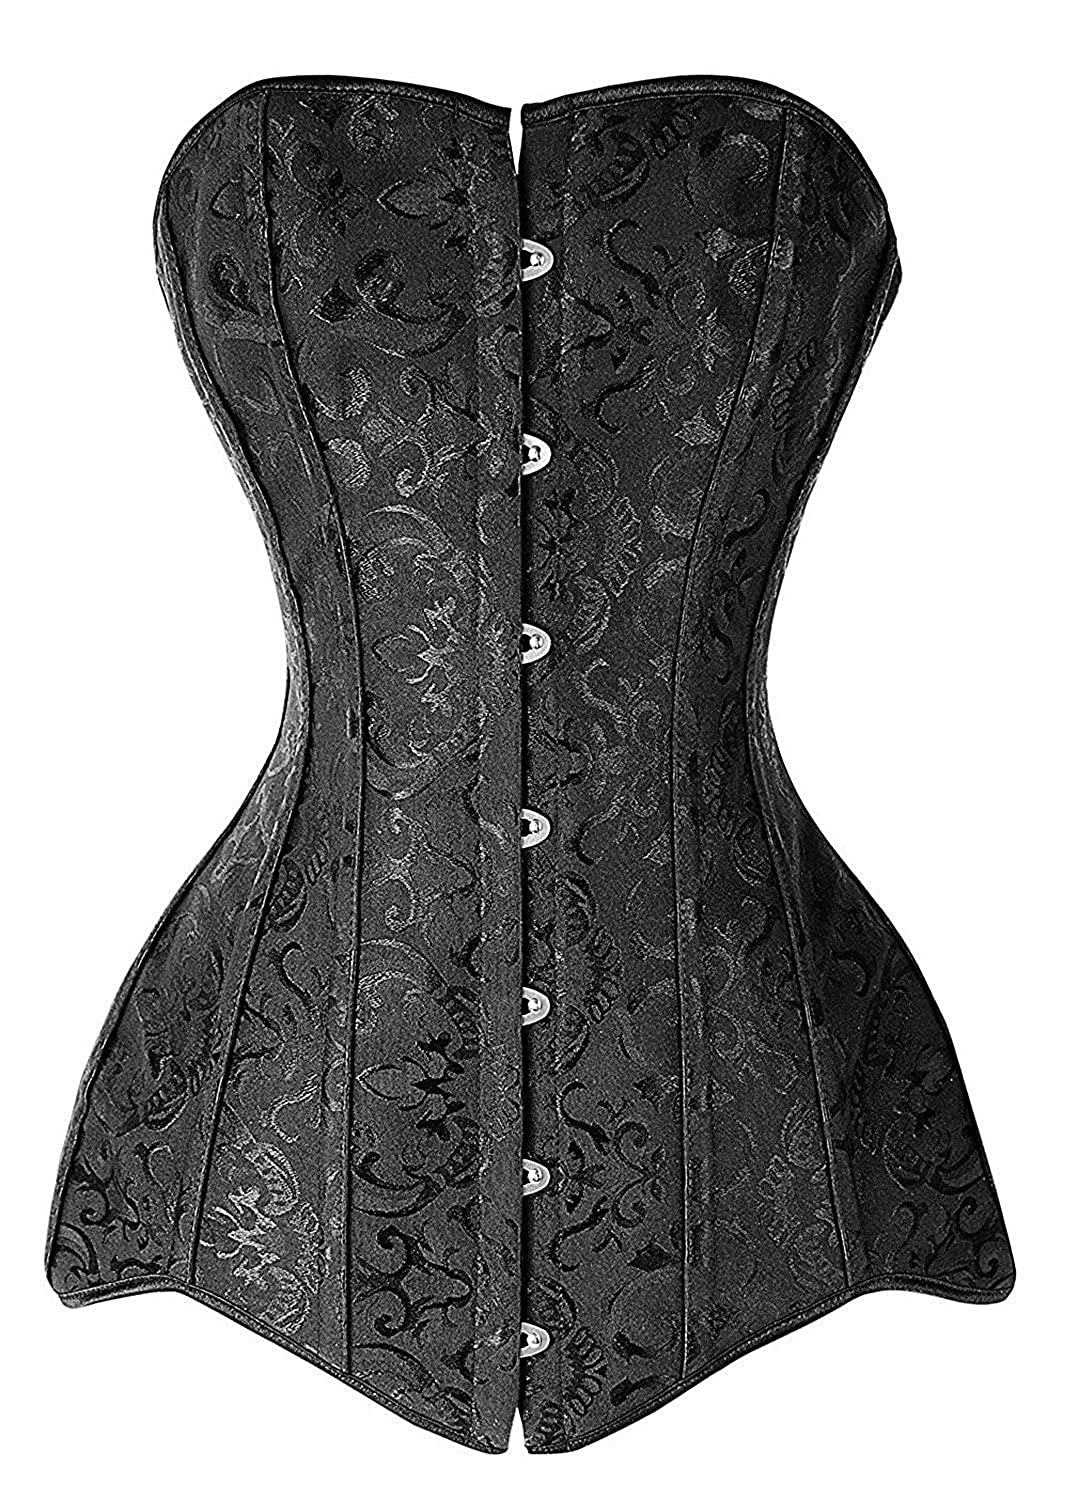 MISS MOLY Women's Gothic Steel Boned Long Torso Hourglass Bustiers Corsets Black M